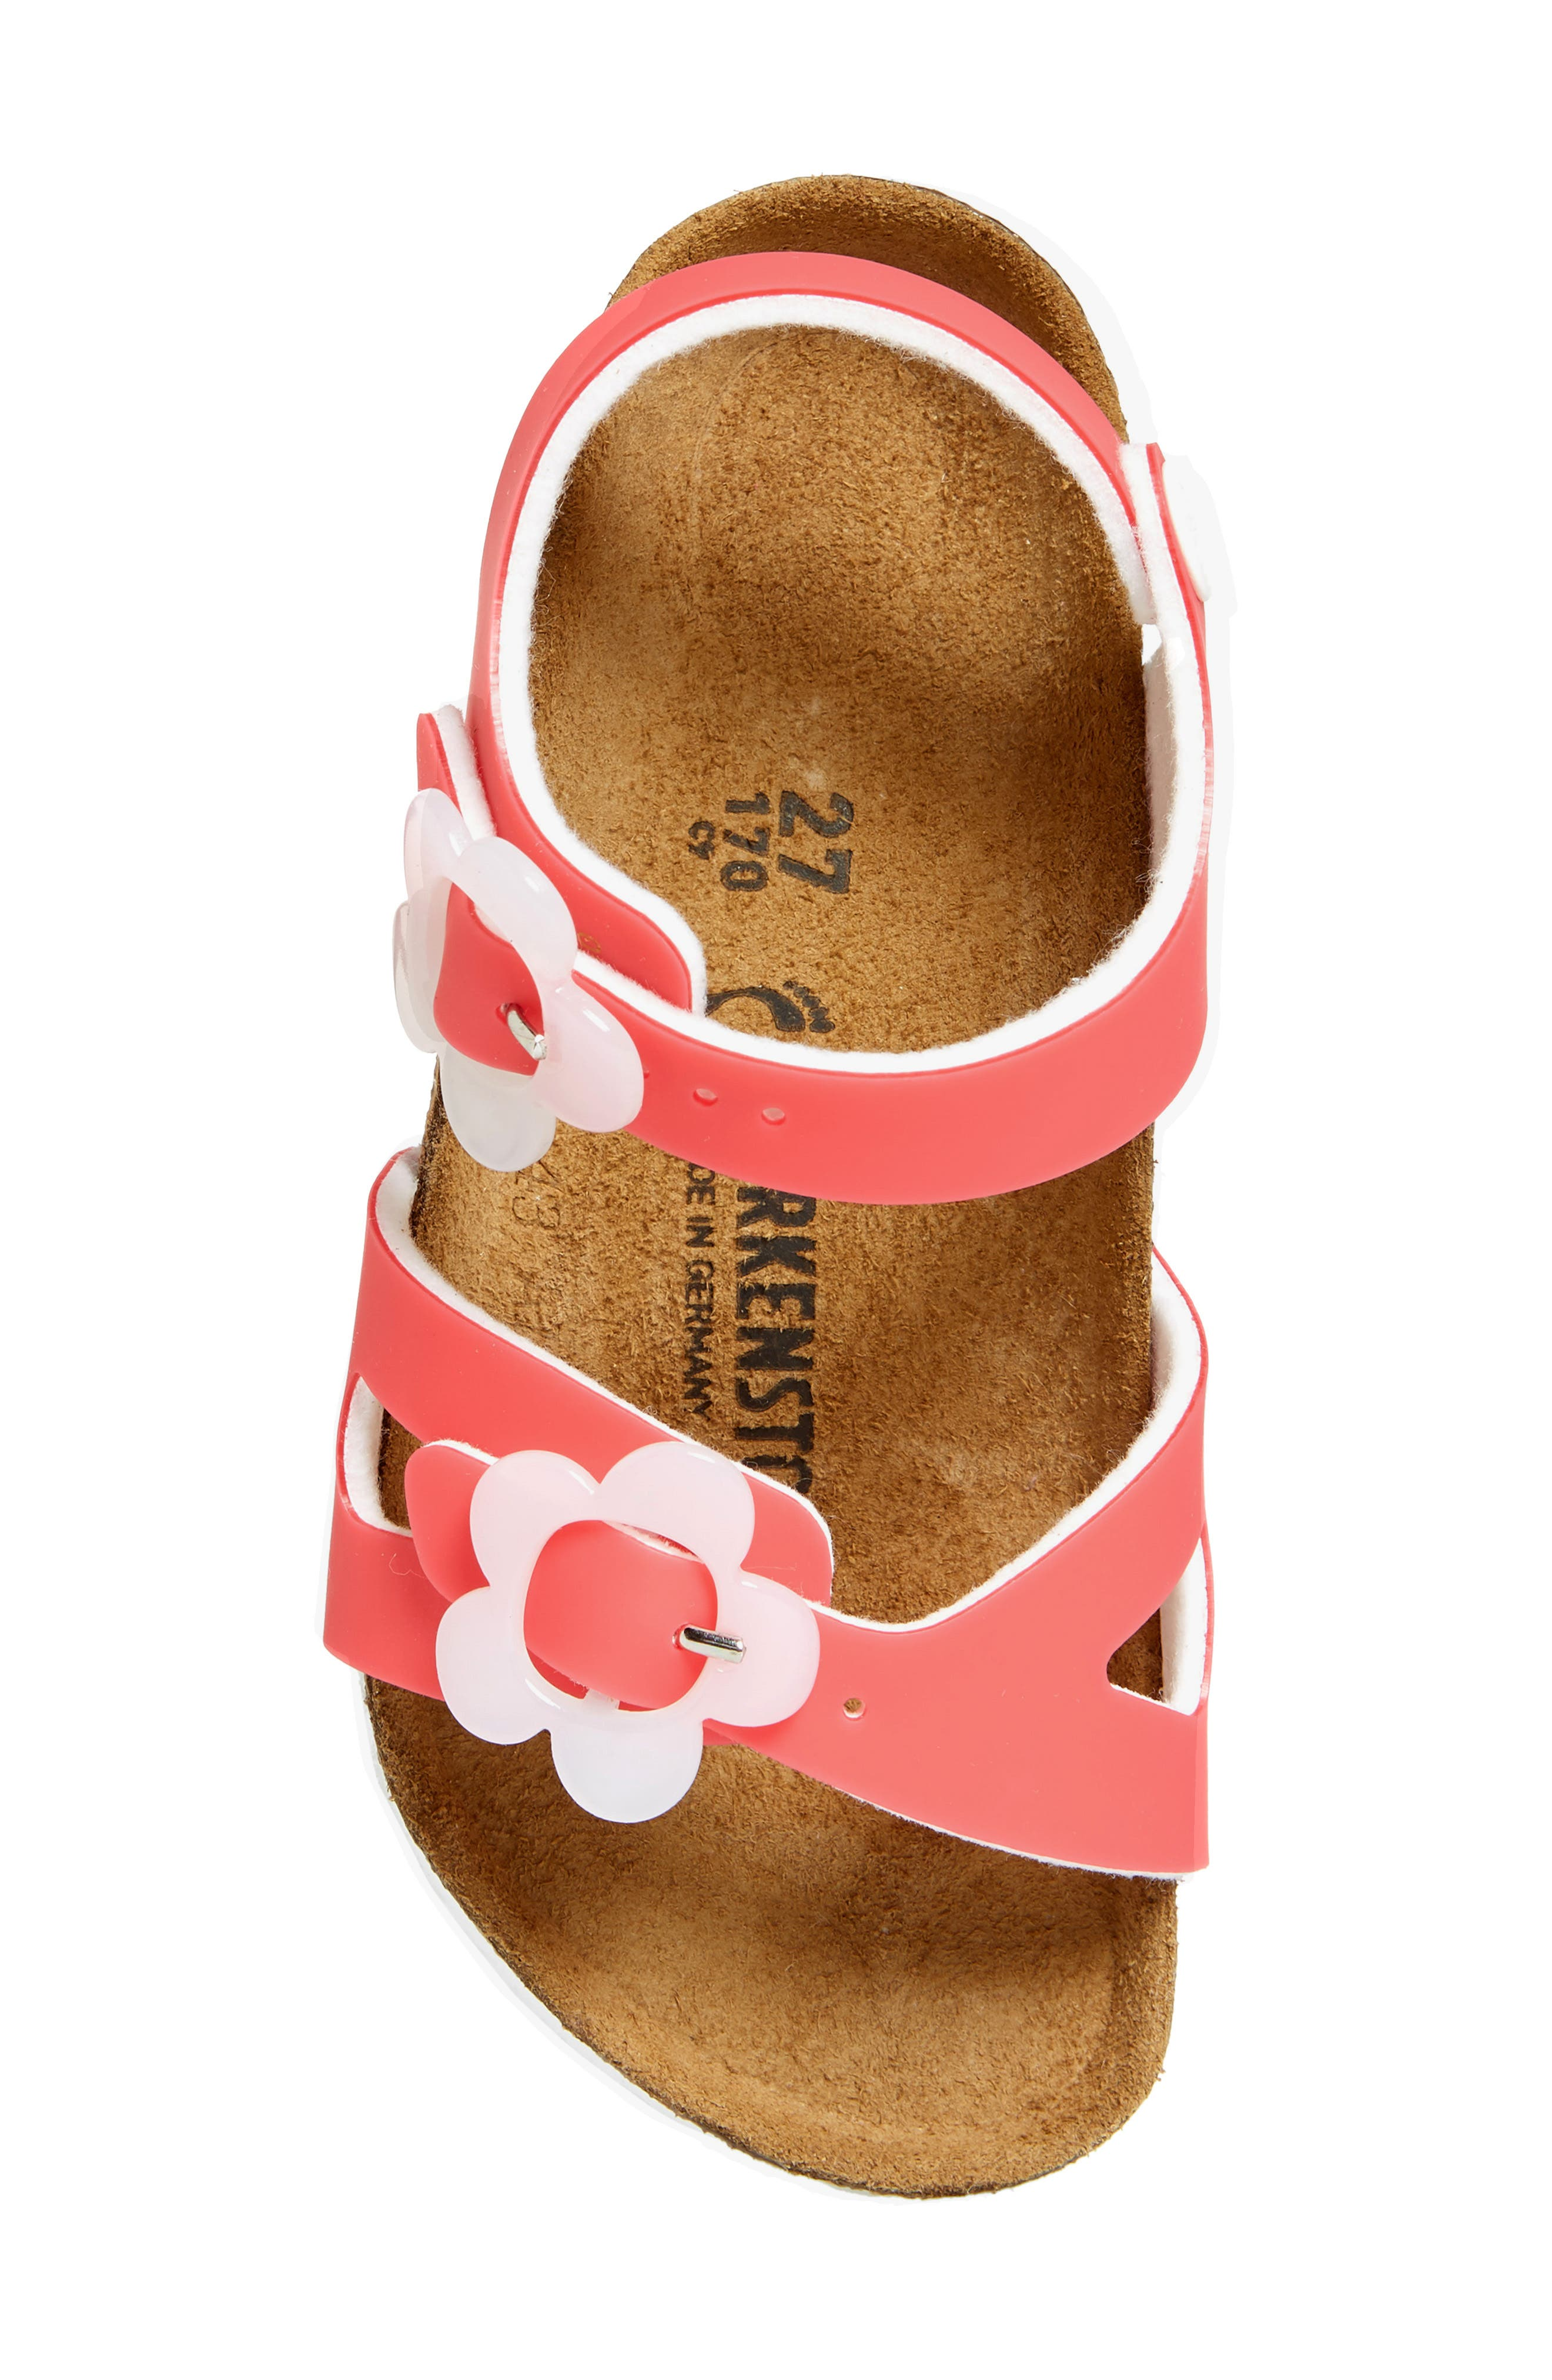 Rio Flowered Sandal,                             Alternate thumbnail 5, color,                             CANDY PINK